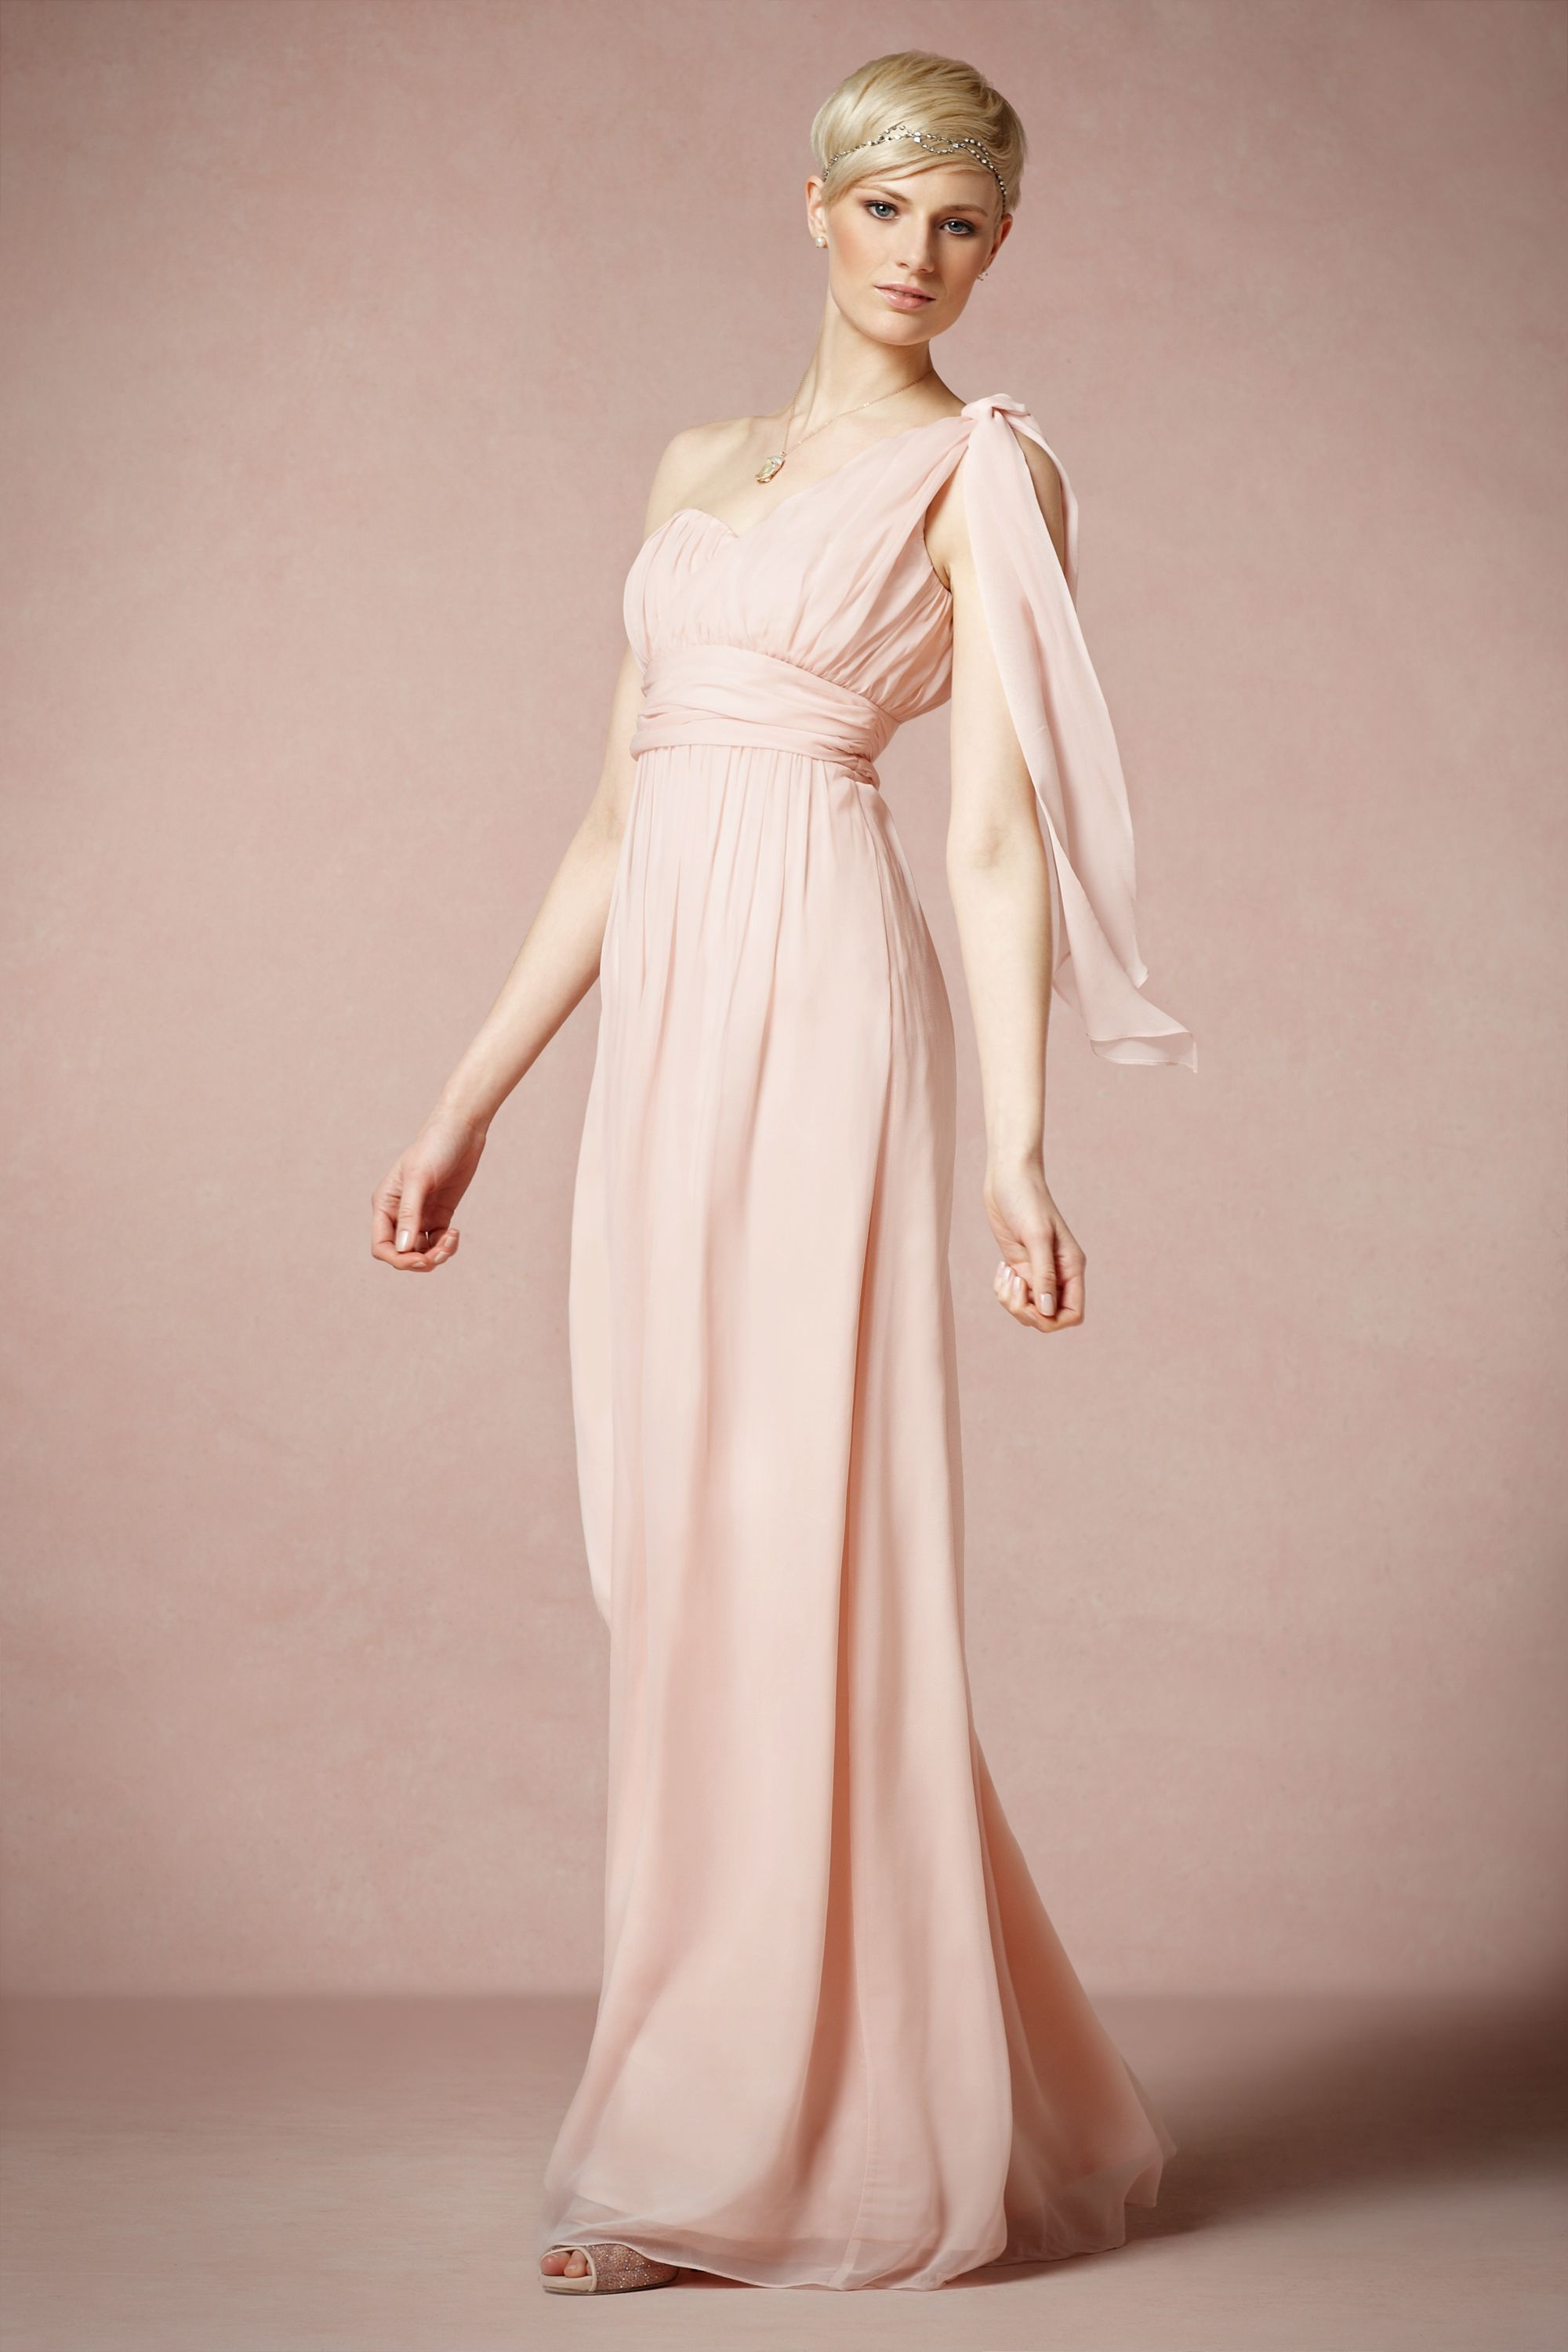 a flowy, diaphanous wedding gown - Google Search | TheDay ...